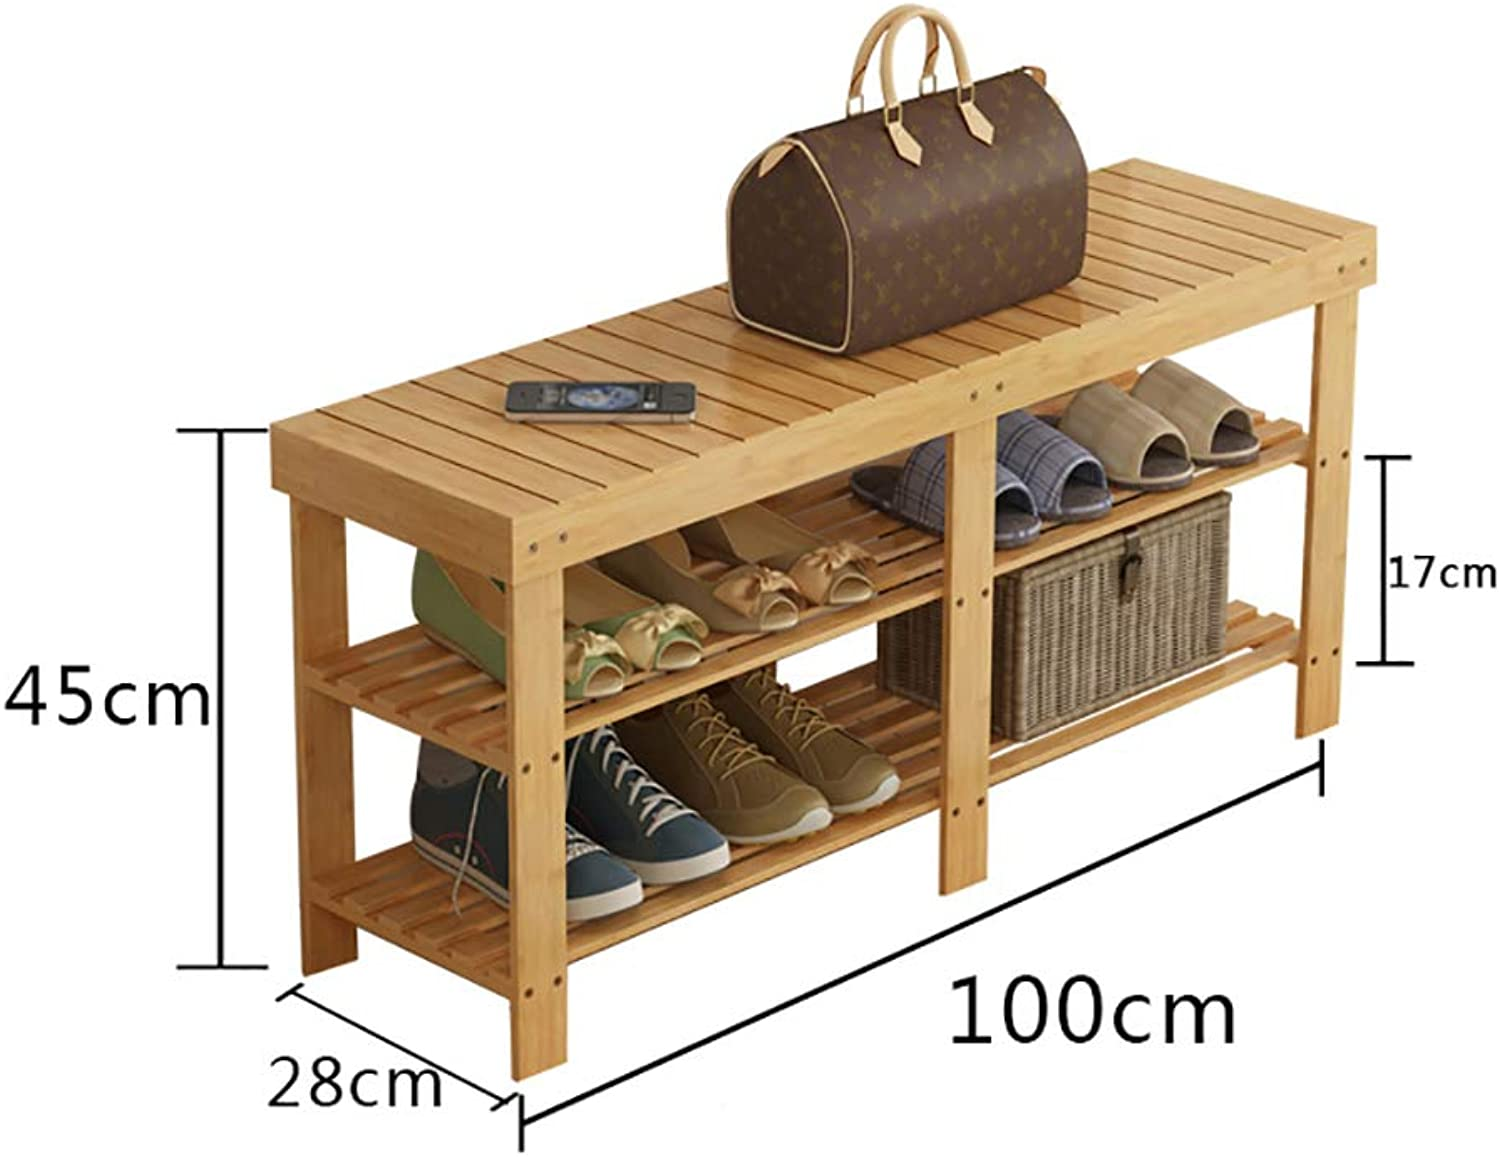 Entrance shoes Rack shoesbox Change shoes Bench Shelf Storage Shelf Multifunction 2 3 Layer Household Dorm Room Space Saving Doorway Bamboo (color   A1)